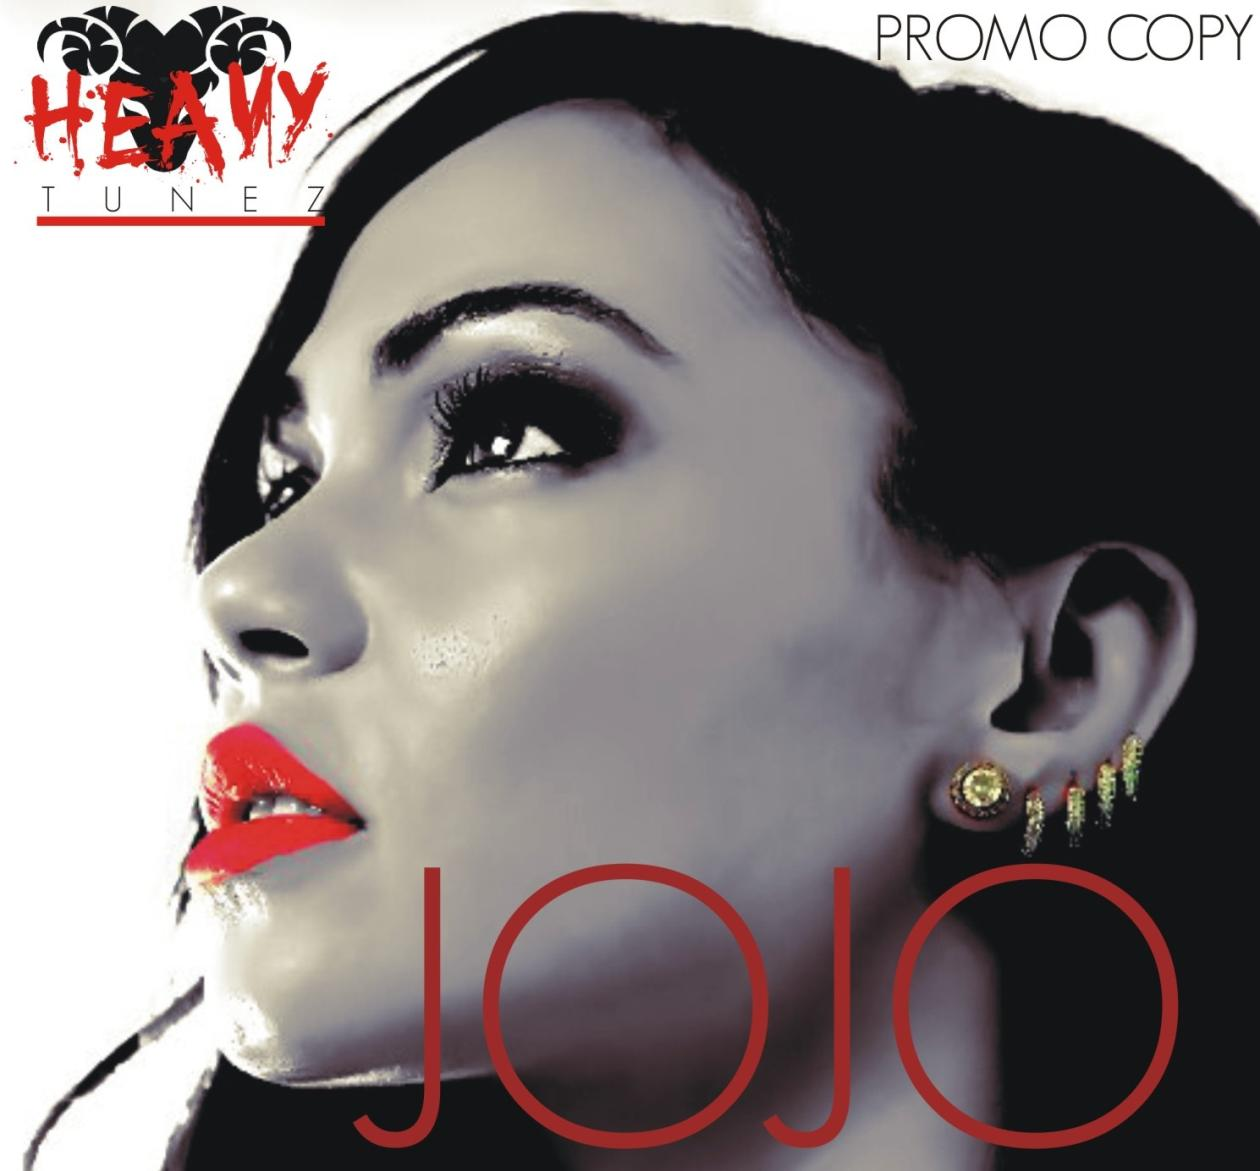 Jojo Let's Dance Artwork | AceWorldTeam.com